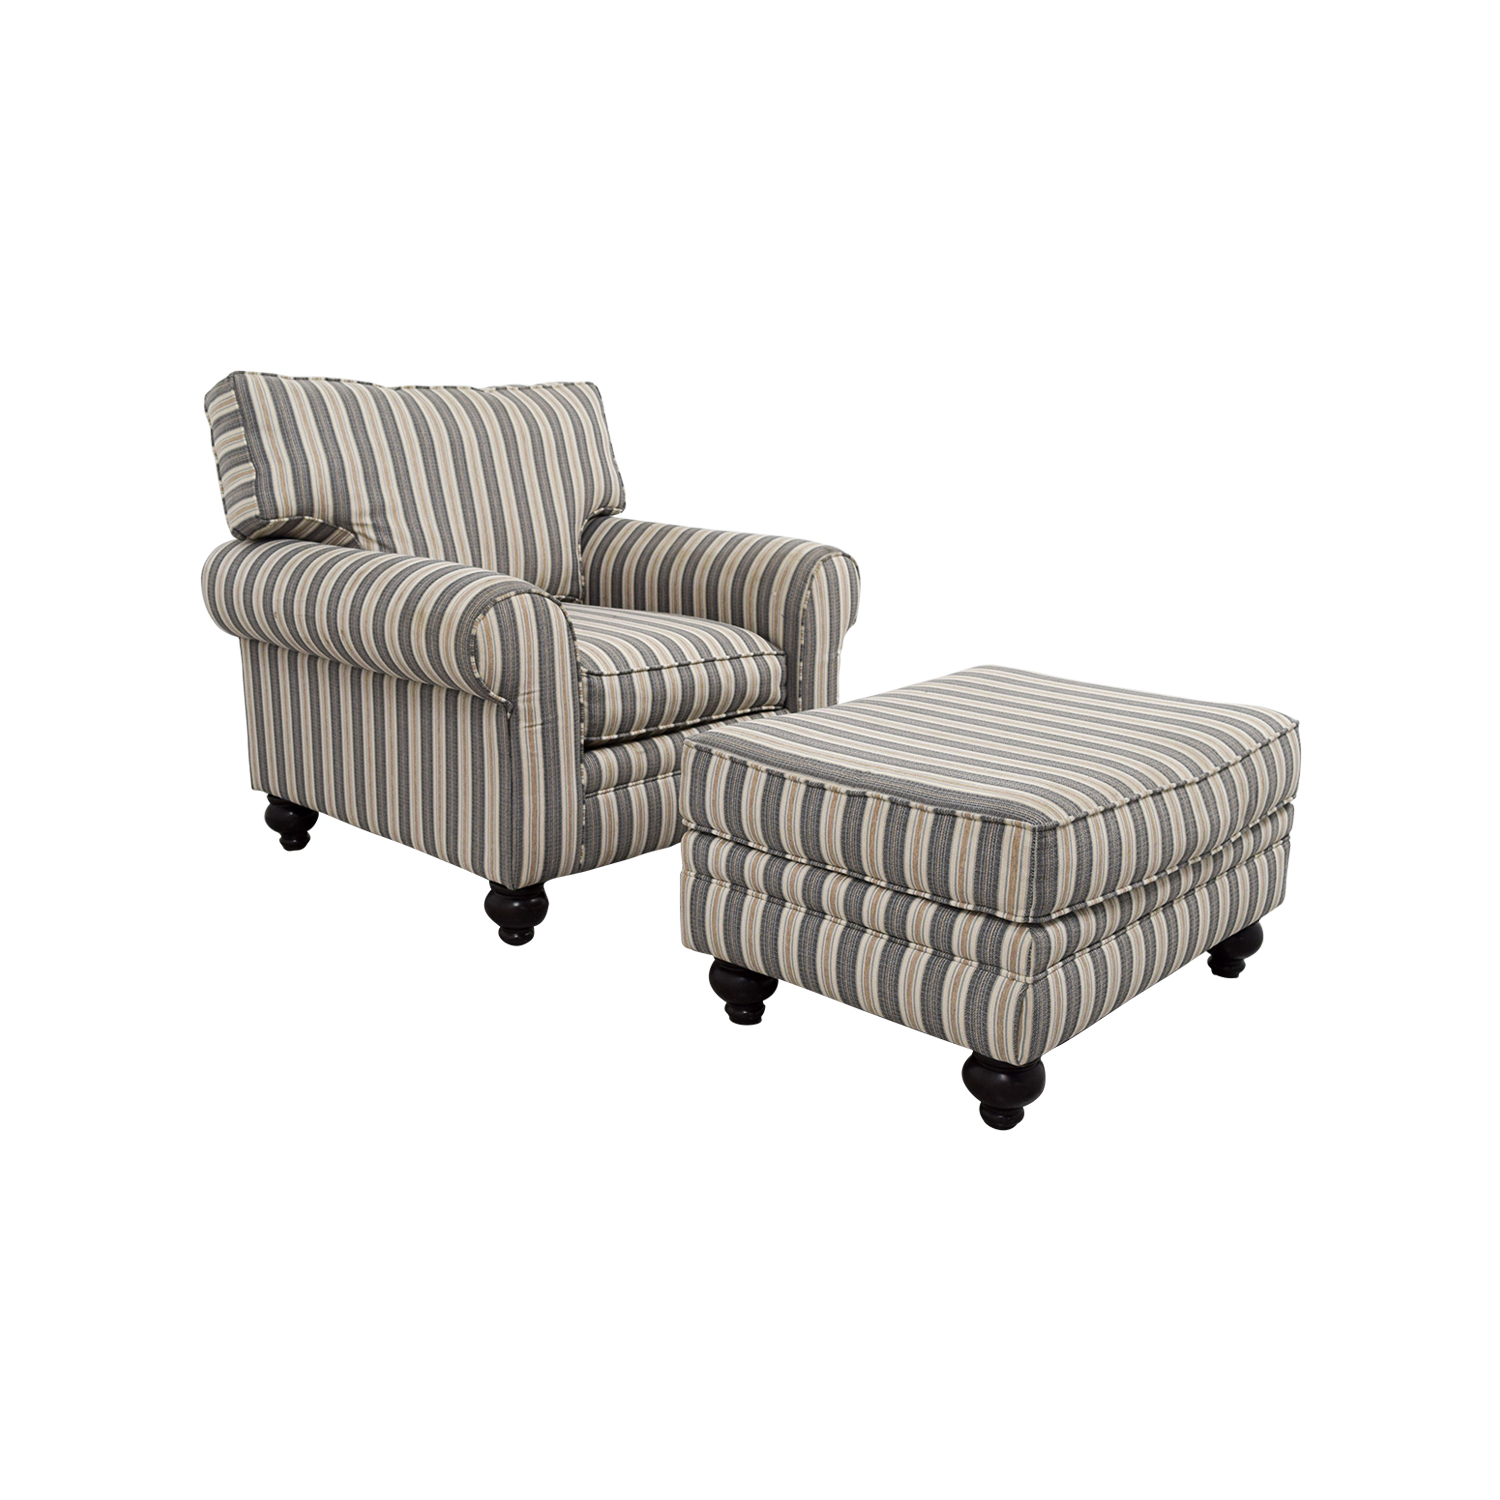 90 Off Bob S Furniture Bob S Furniture Sofa Chair With - Swivel Chairs Bobs Furniture